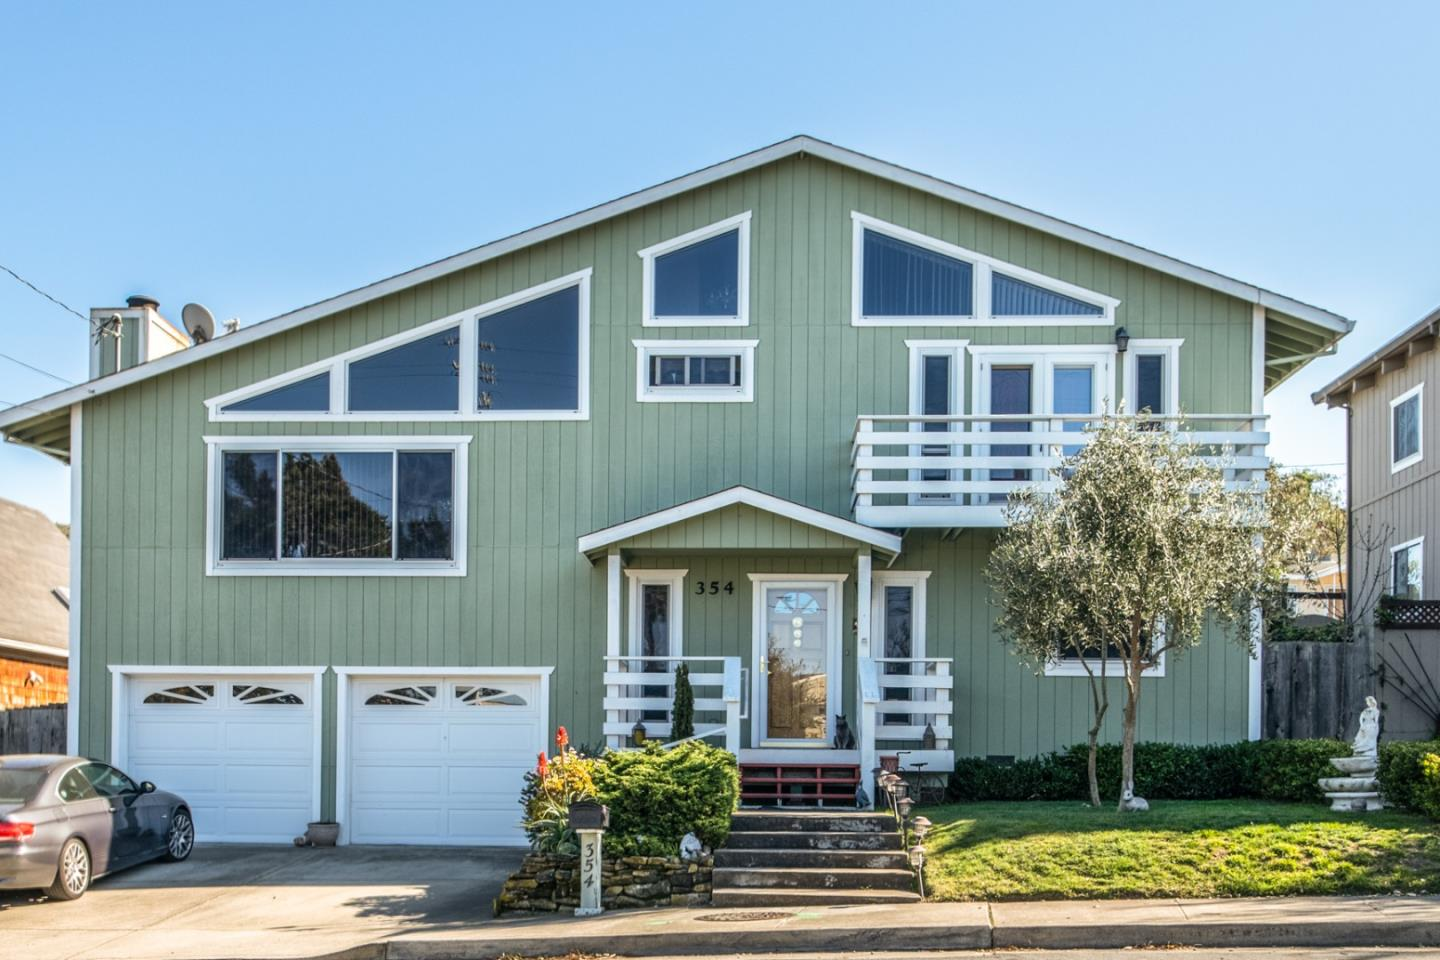 Photo of 354 Euclid AVE, MONTEREY, CA 93940